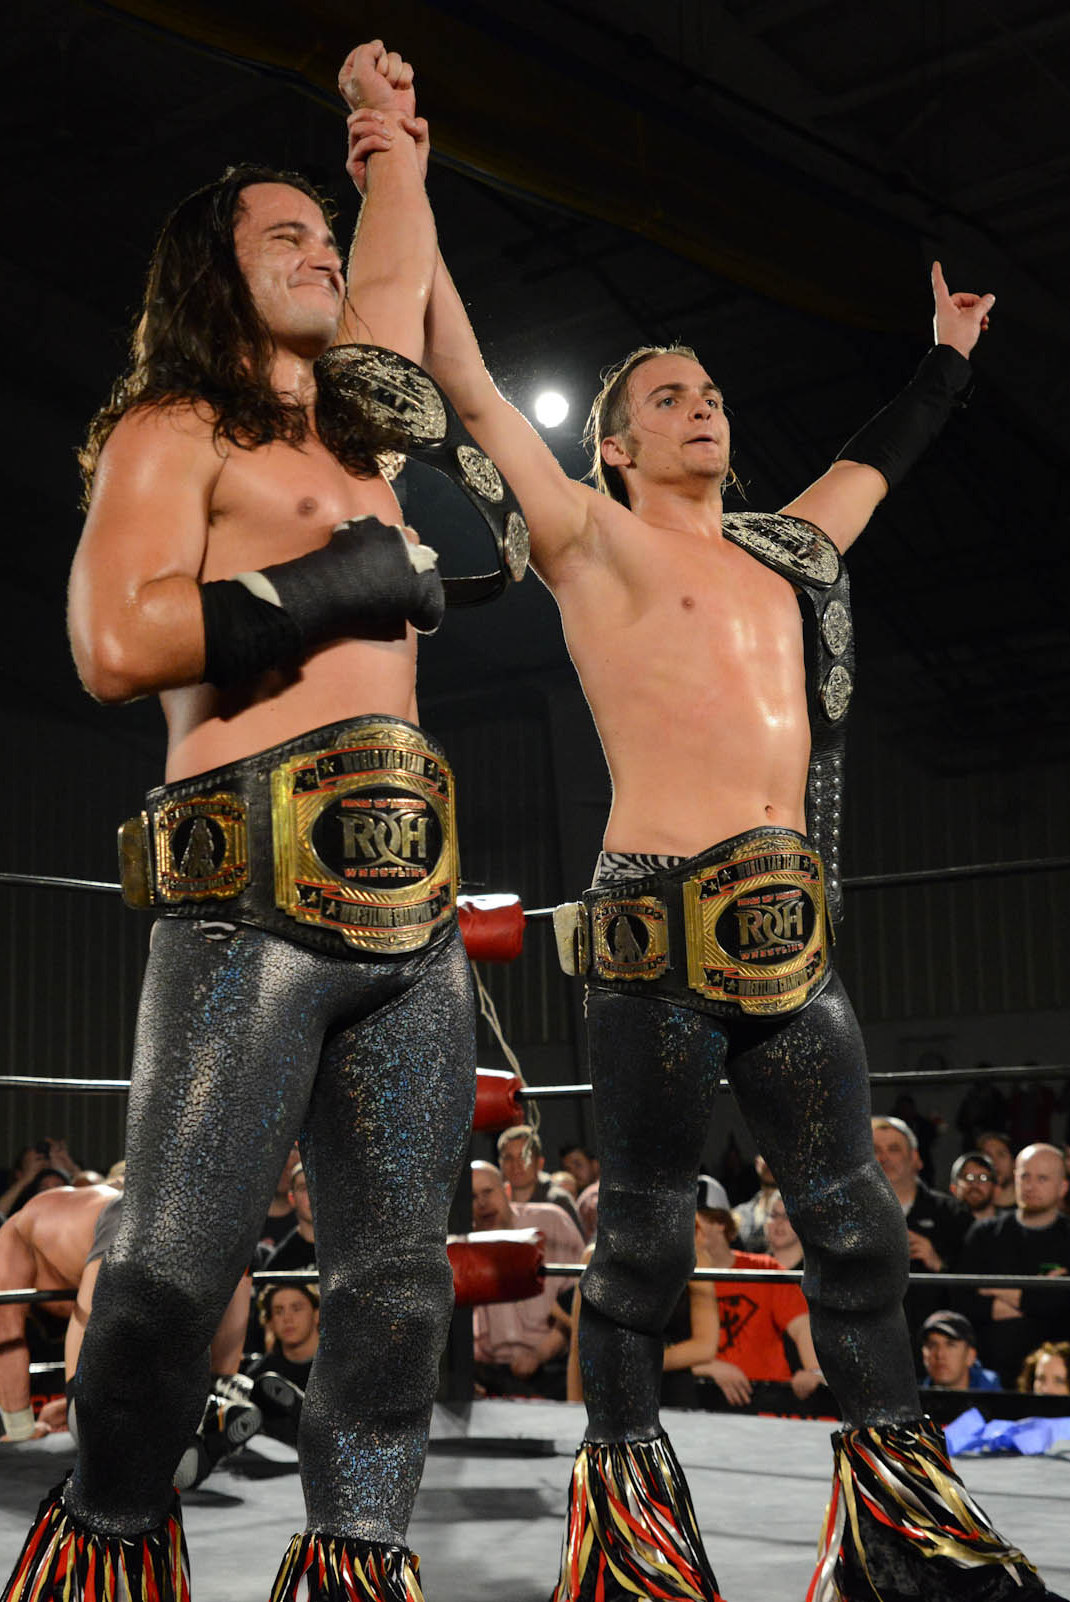 The_Young_Bucks_ROH_and_IWGP_Jr_Heavy_Tag_Team_Champions